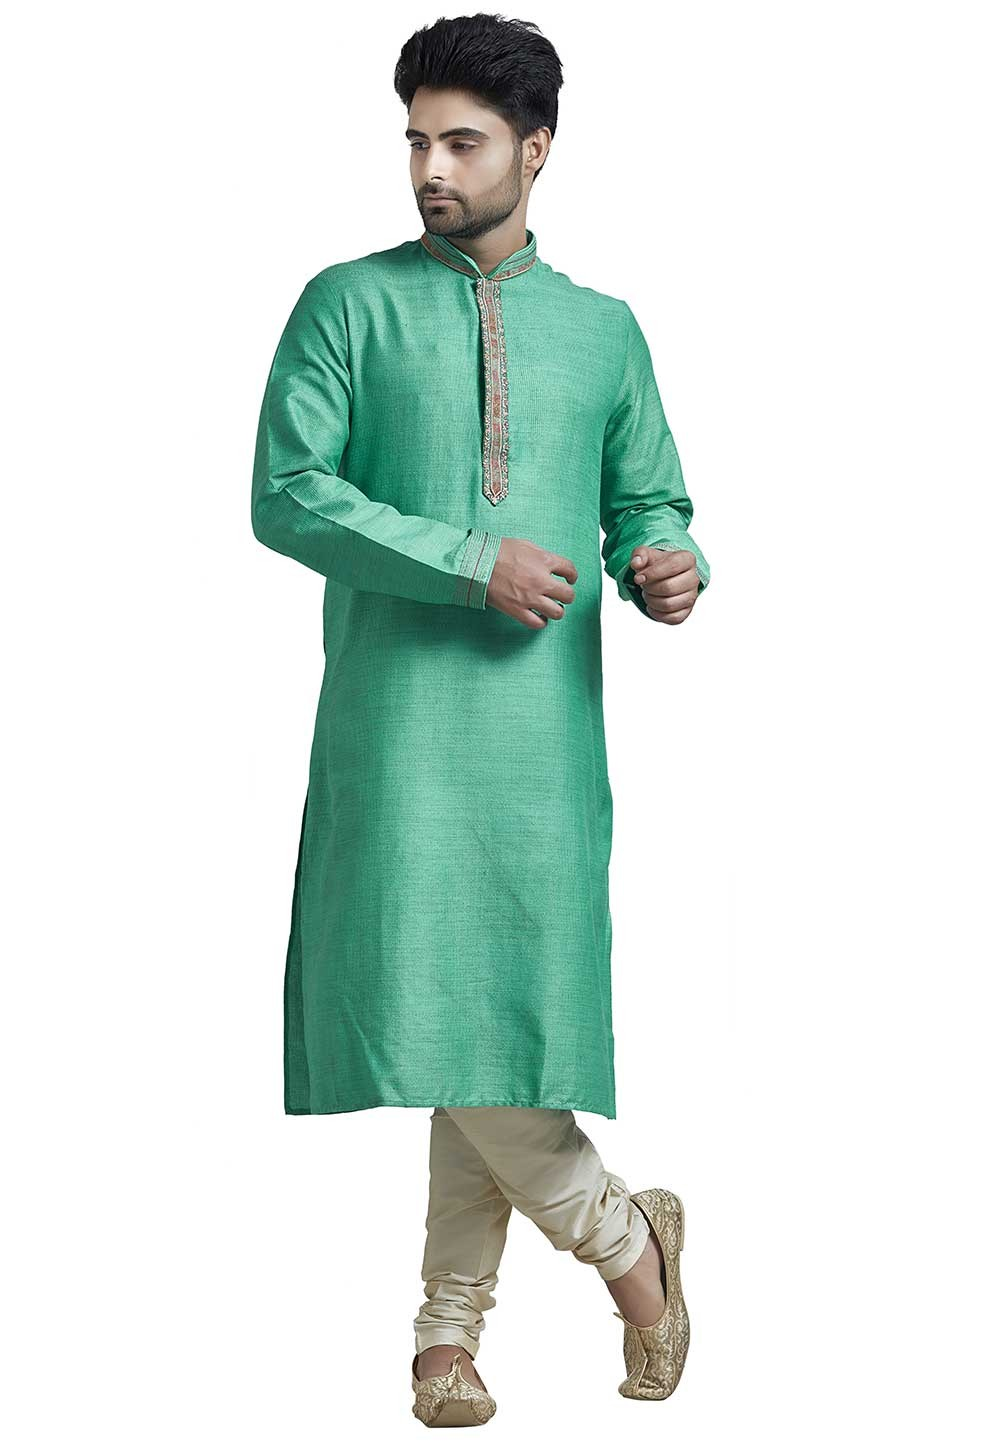 Buy Designer Kurta Pajama Online in Green Colour